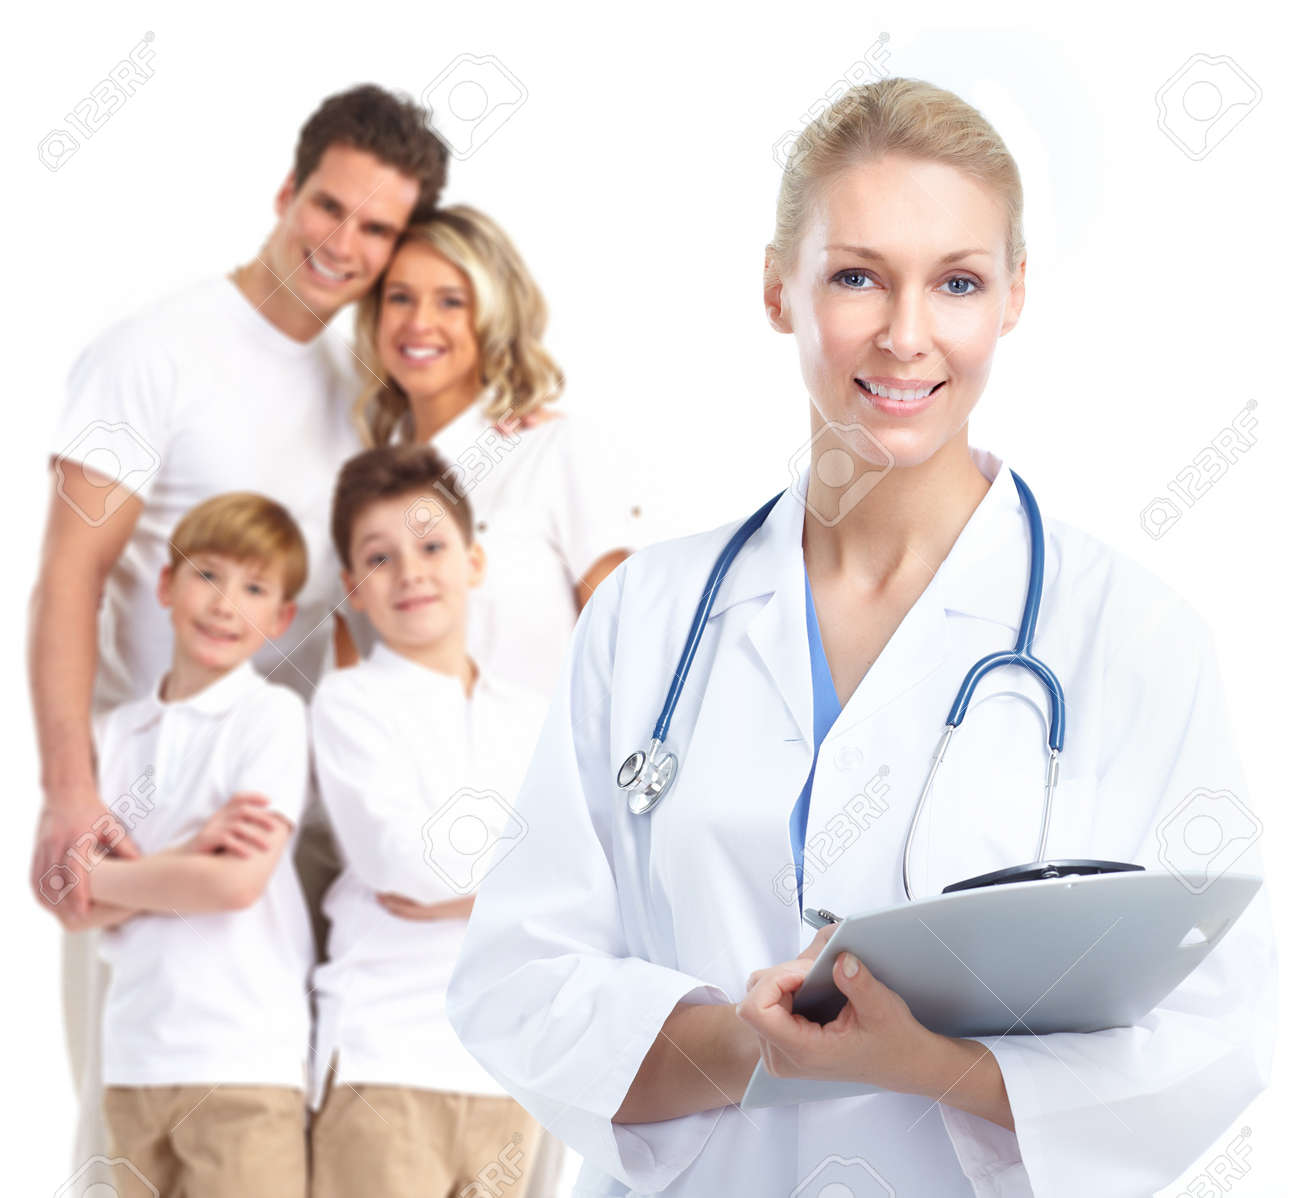 family career stock photos pictures royalty family career family career doctor